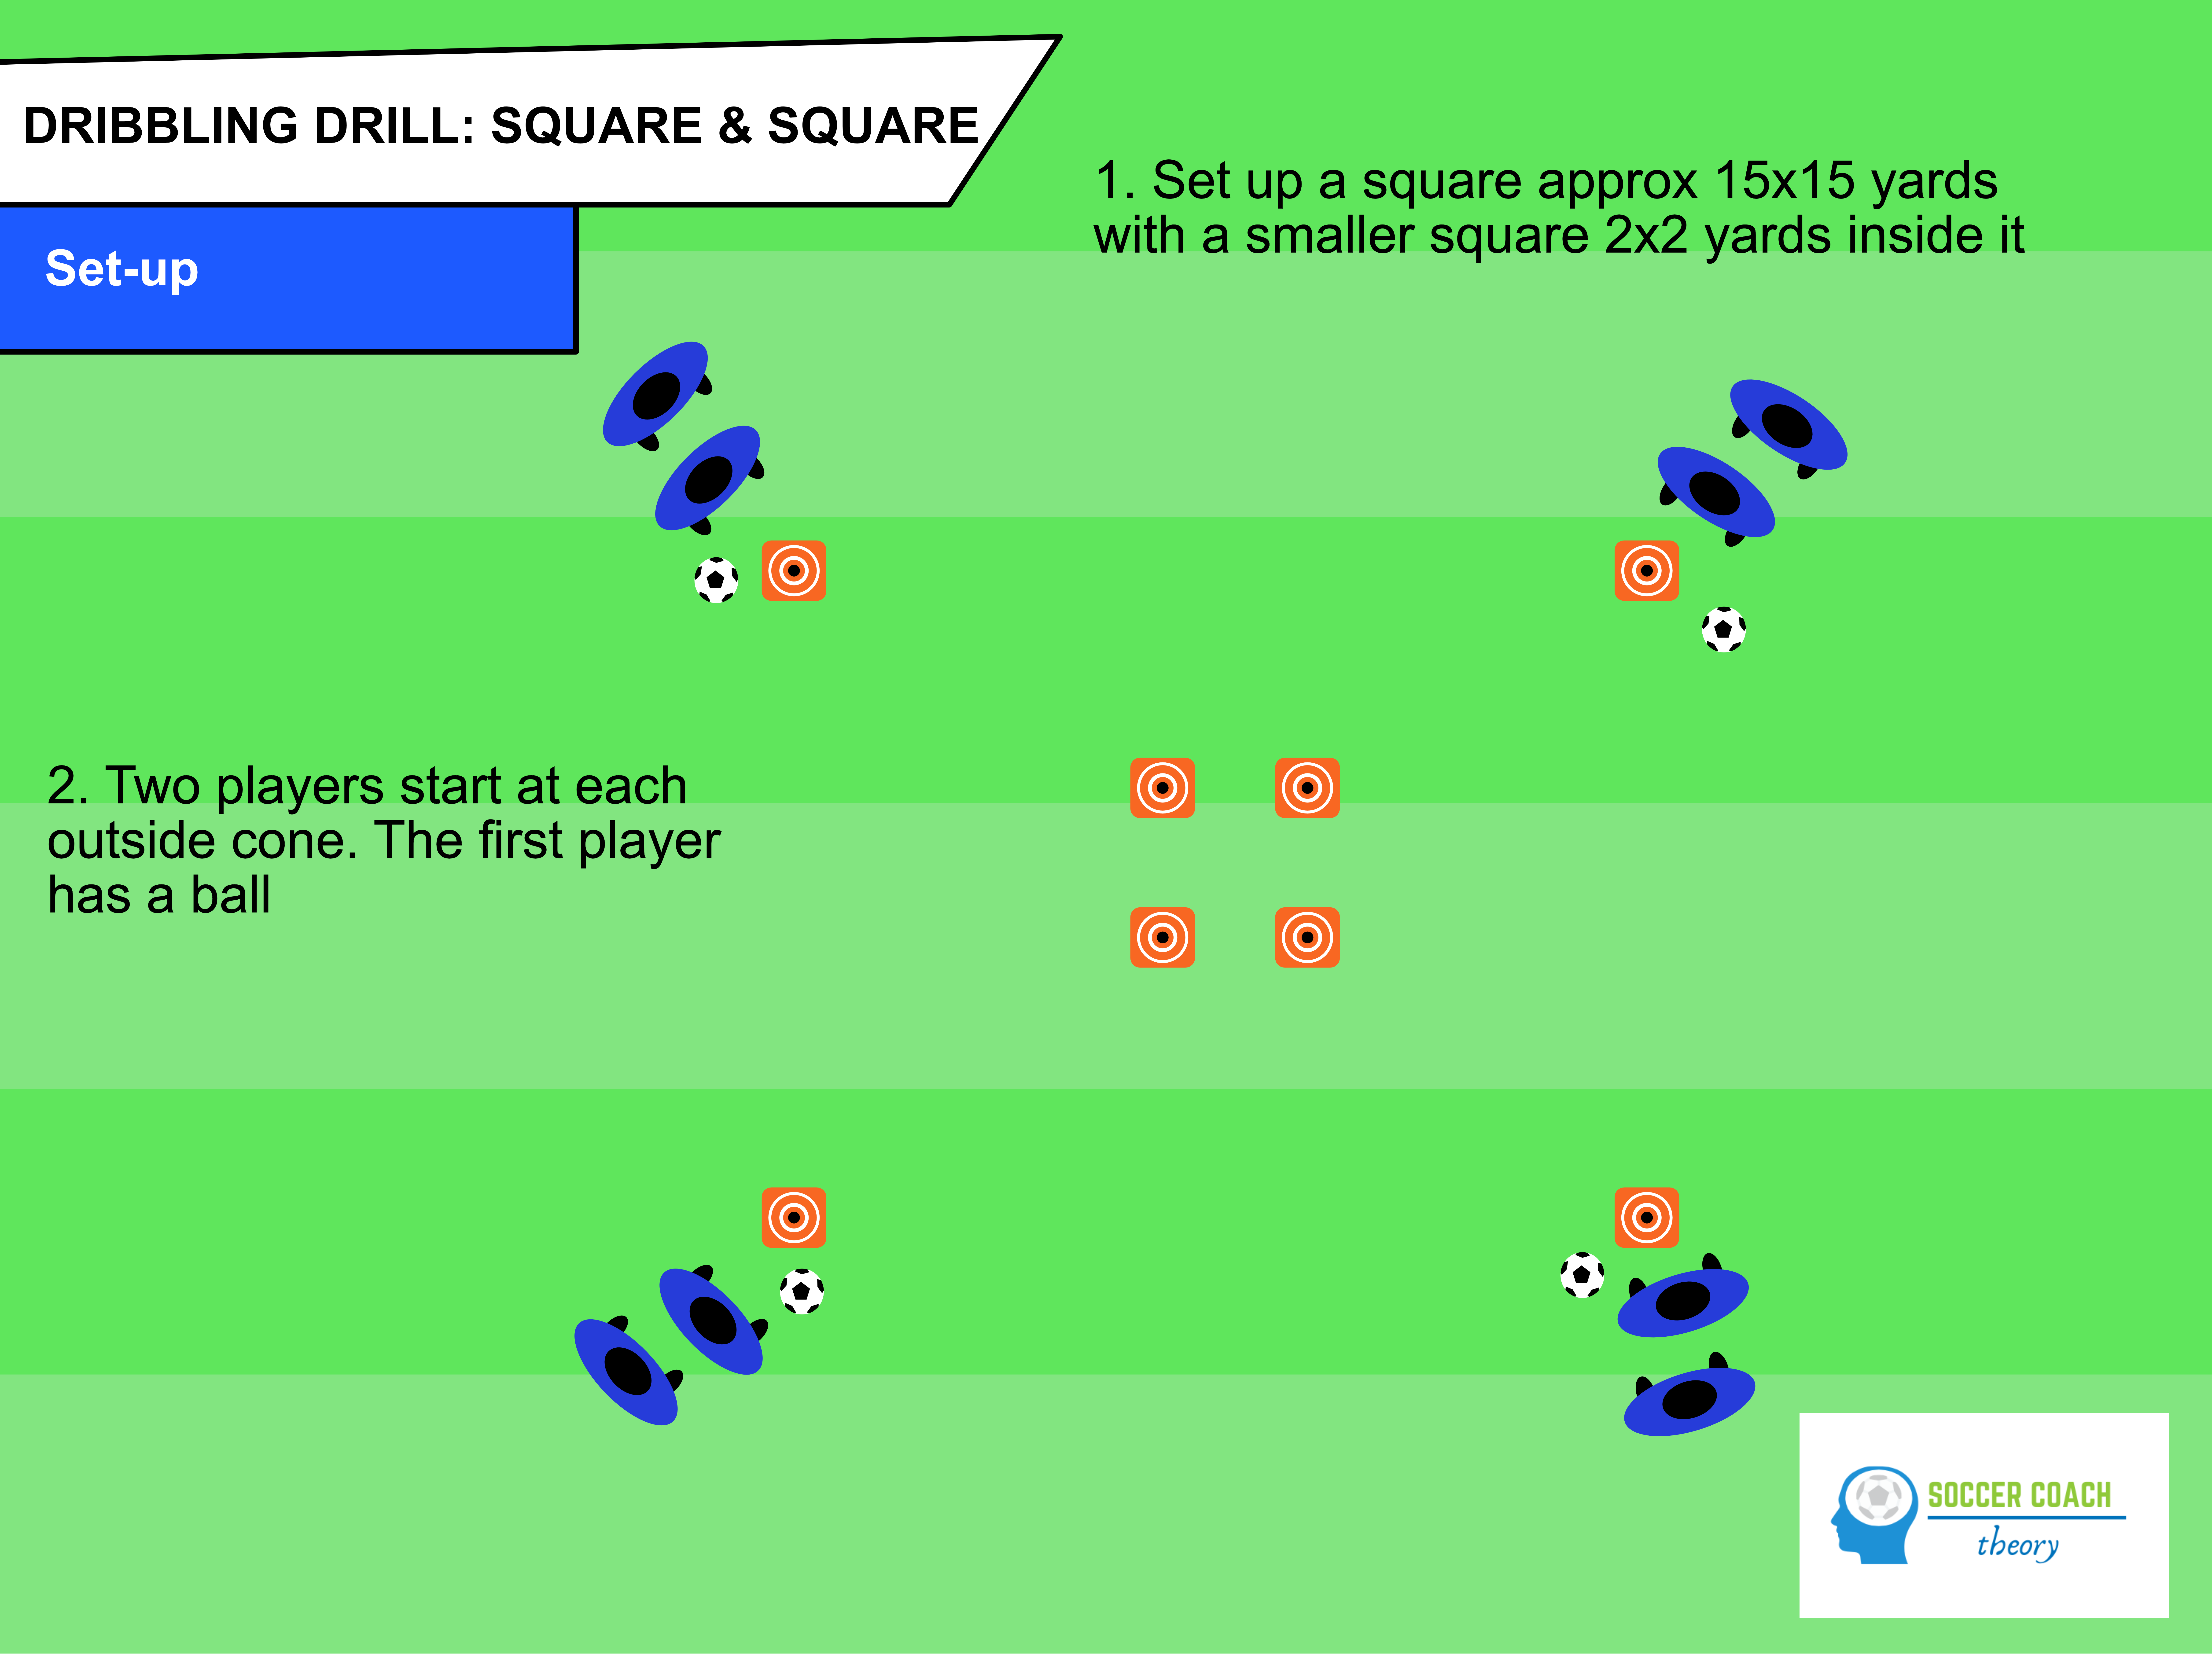 Soccer dribbling drill: square & square - set-up